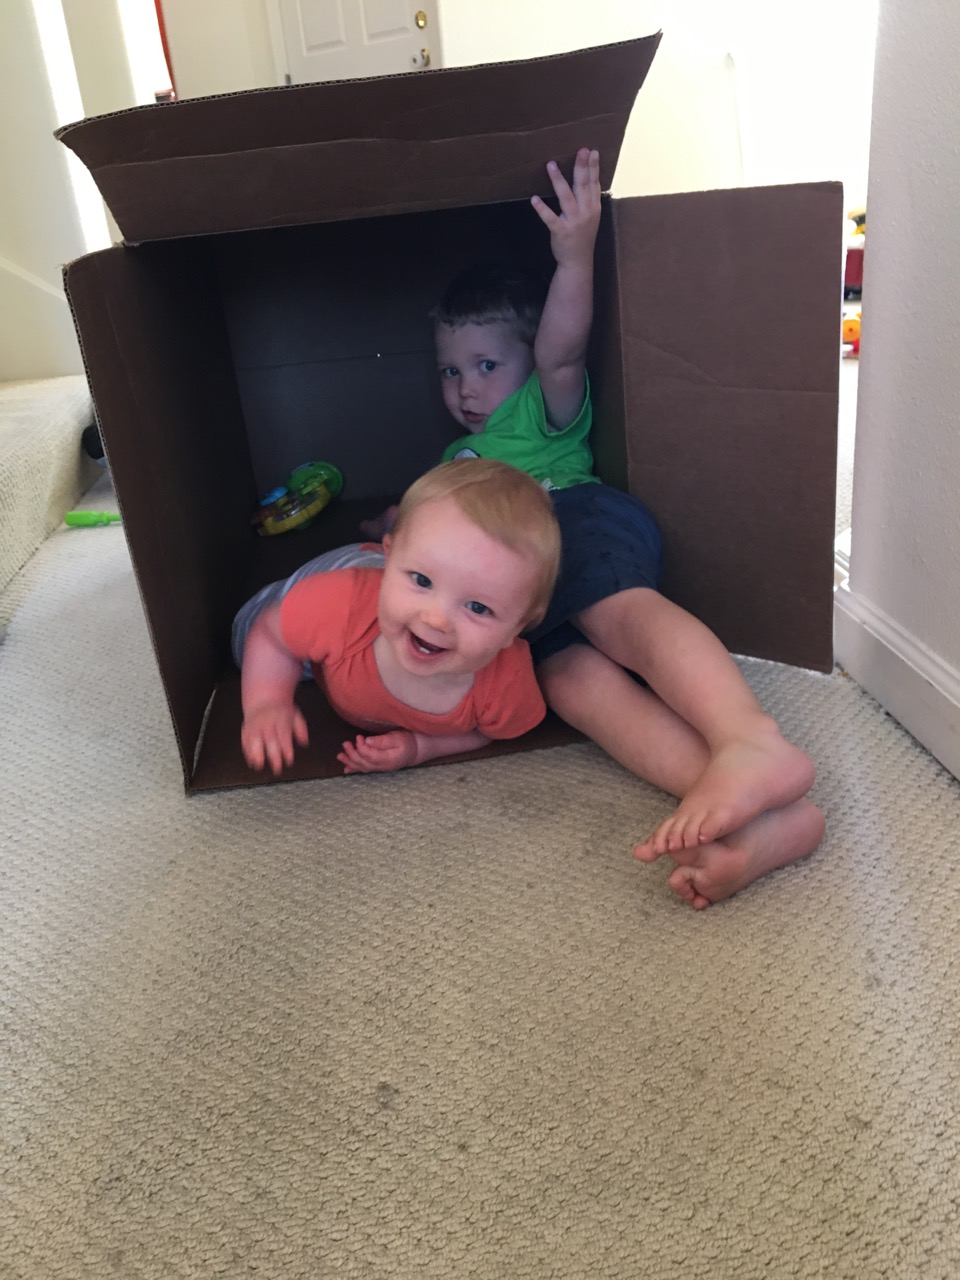 The car seat box was so much fun to play in